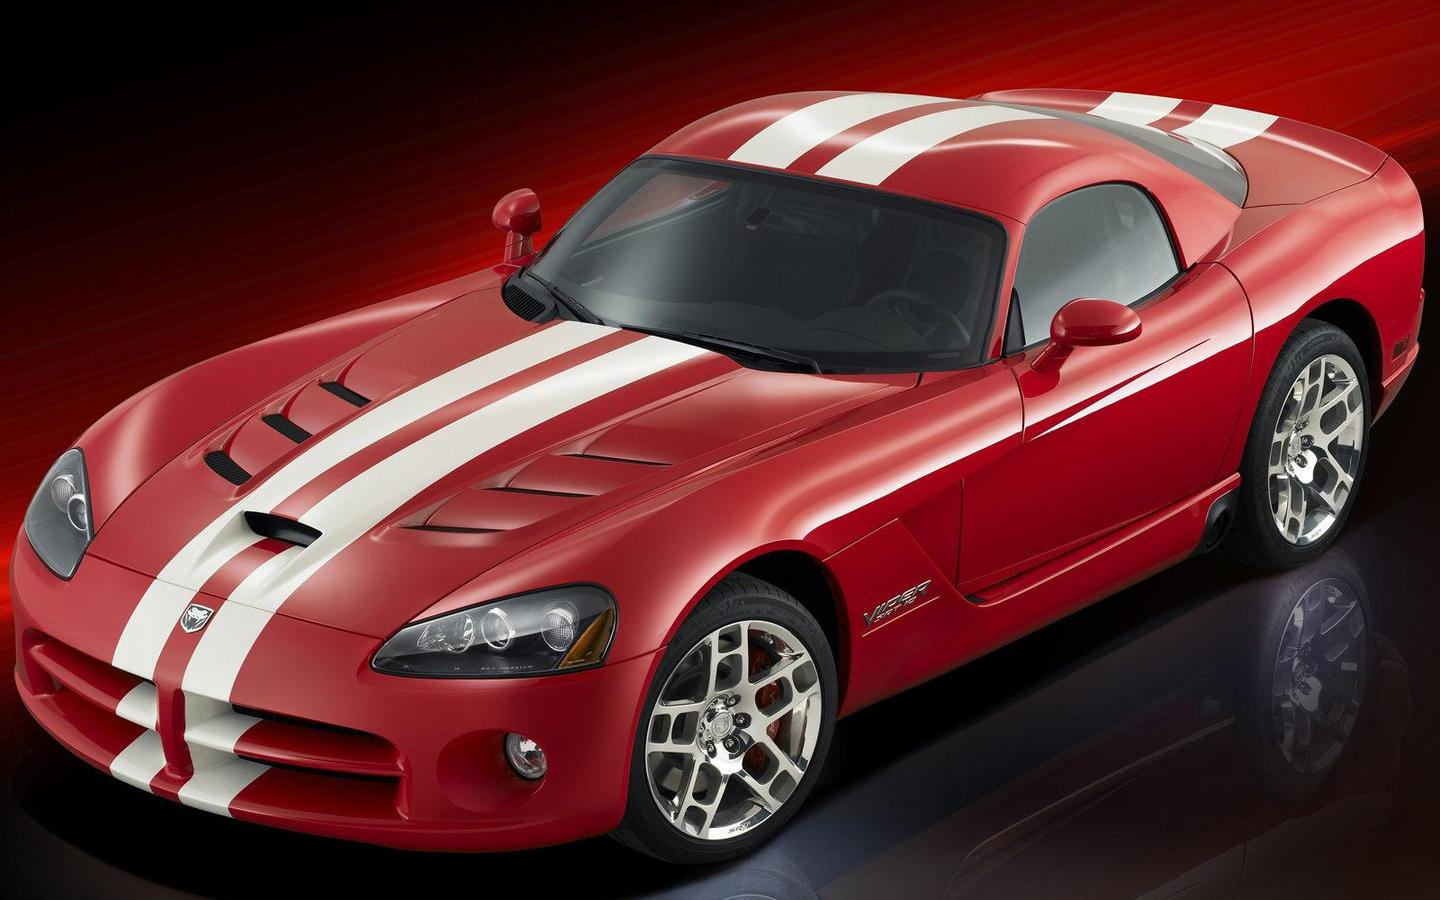 Dodge Viper Srt10 2008 1600×1200 Wallpaper 02